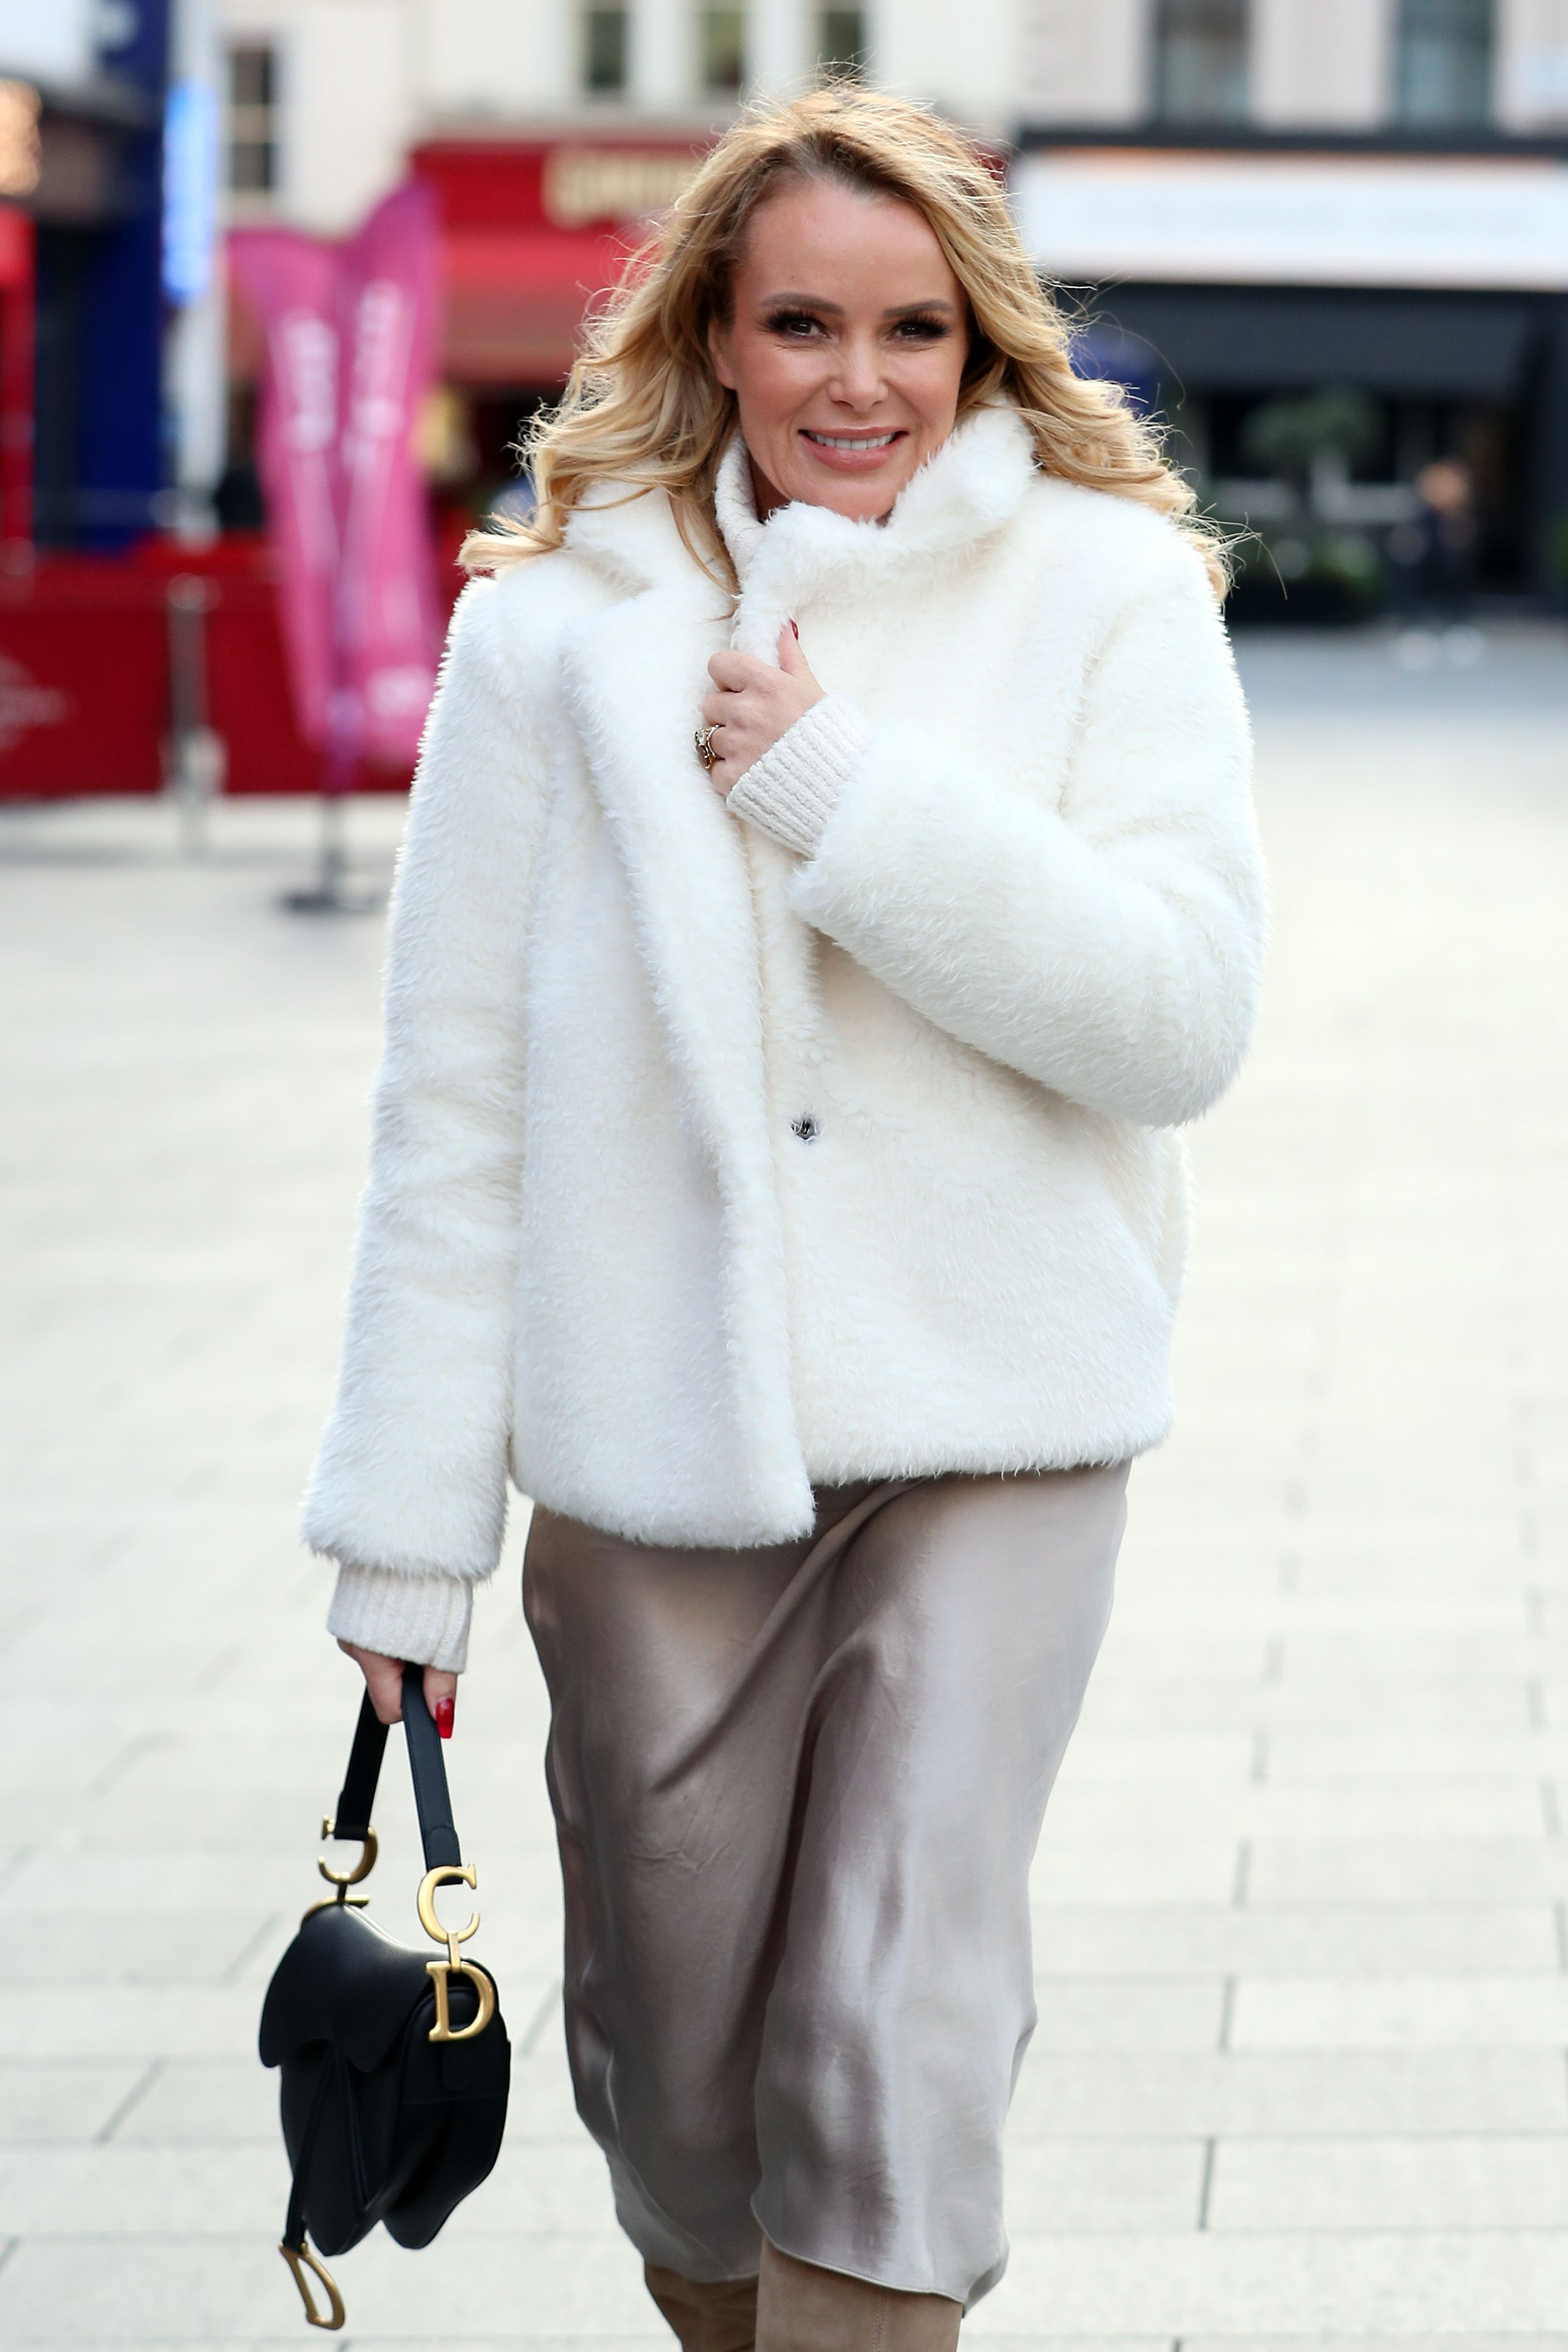 Amanda Holden Tape https://www.prima.co.uk/leisure/tv-and-film/a30511839/steph